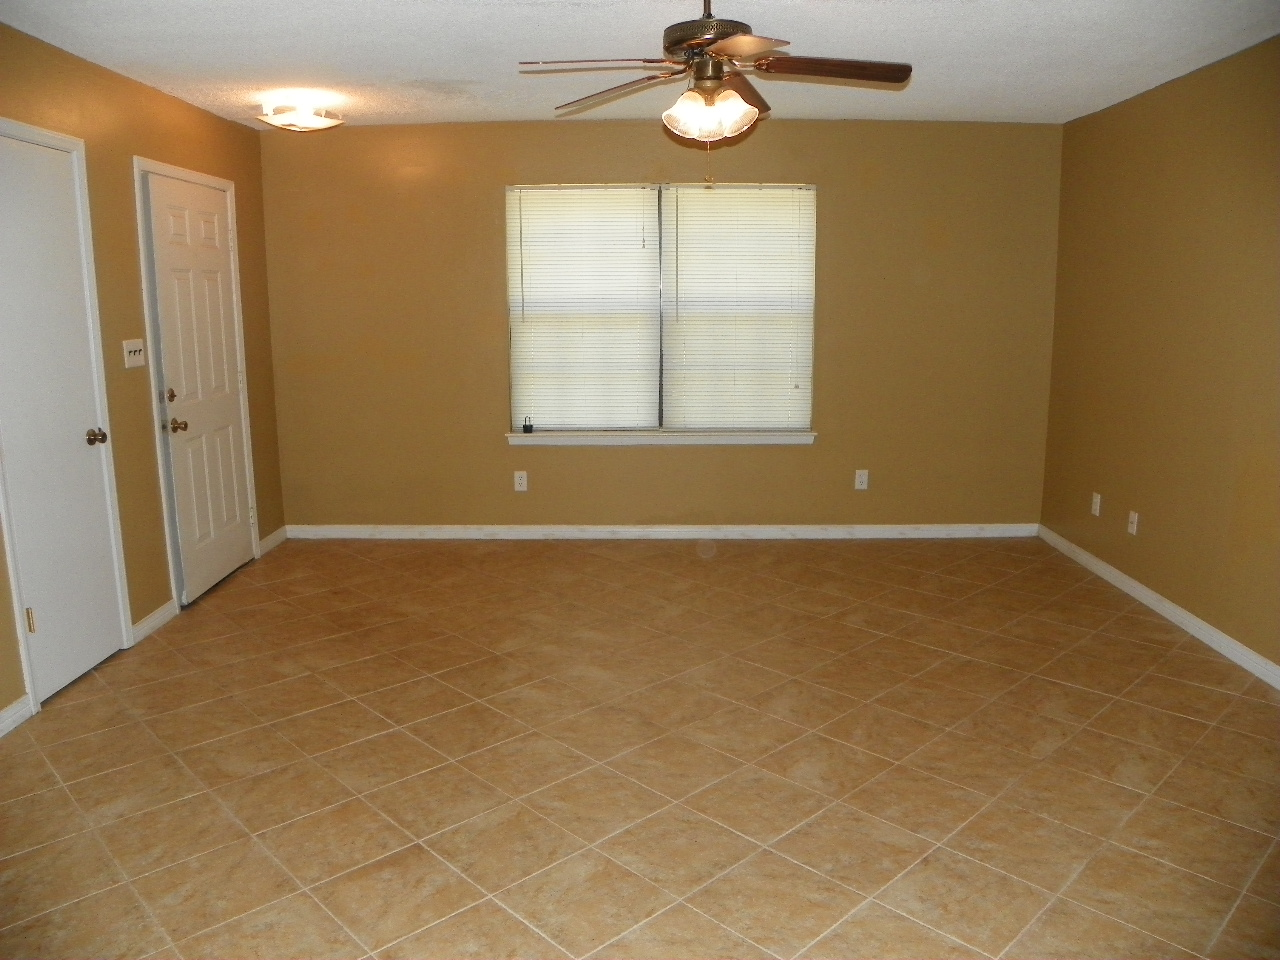 Love to live in pensacola florida 5 easy improvements for your pensacola property management ceiling fans and tiled floors in living room aloadofball Image collections